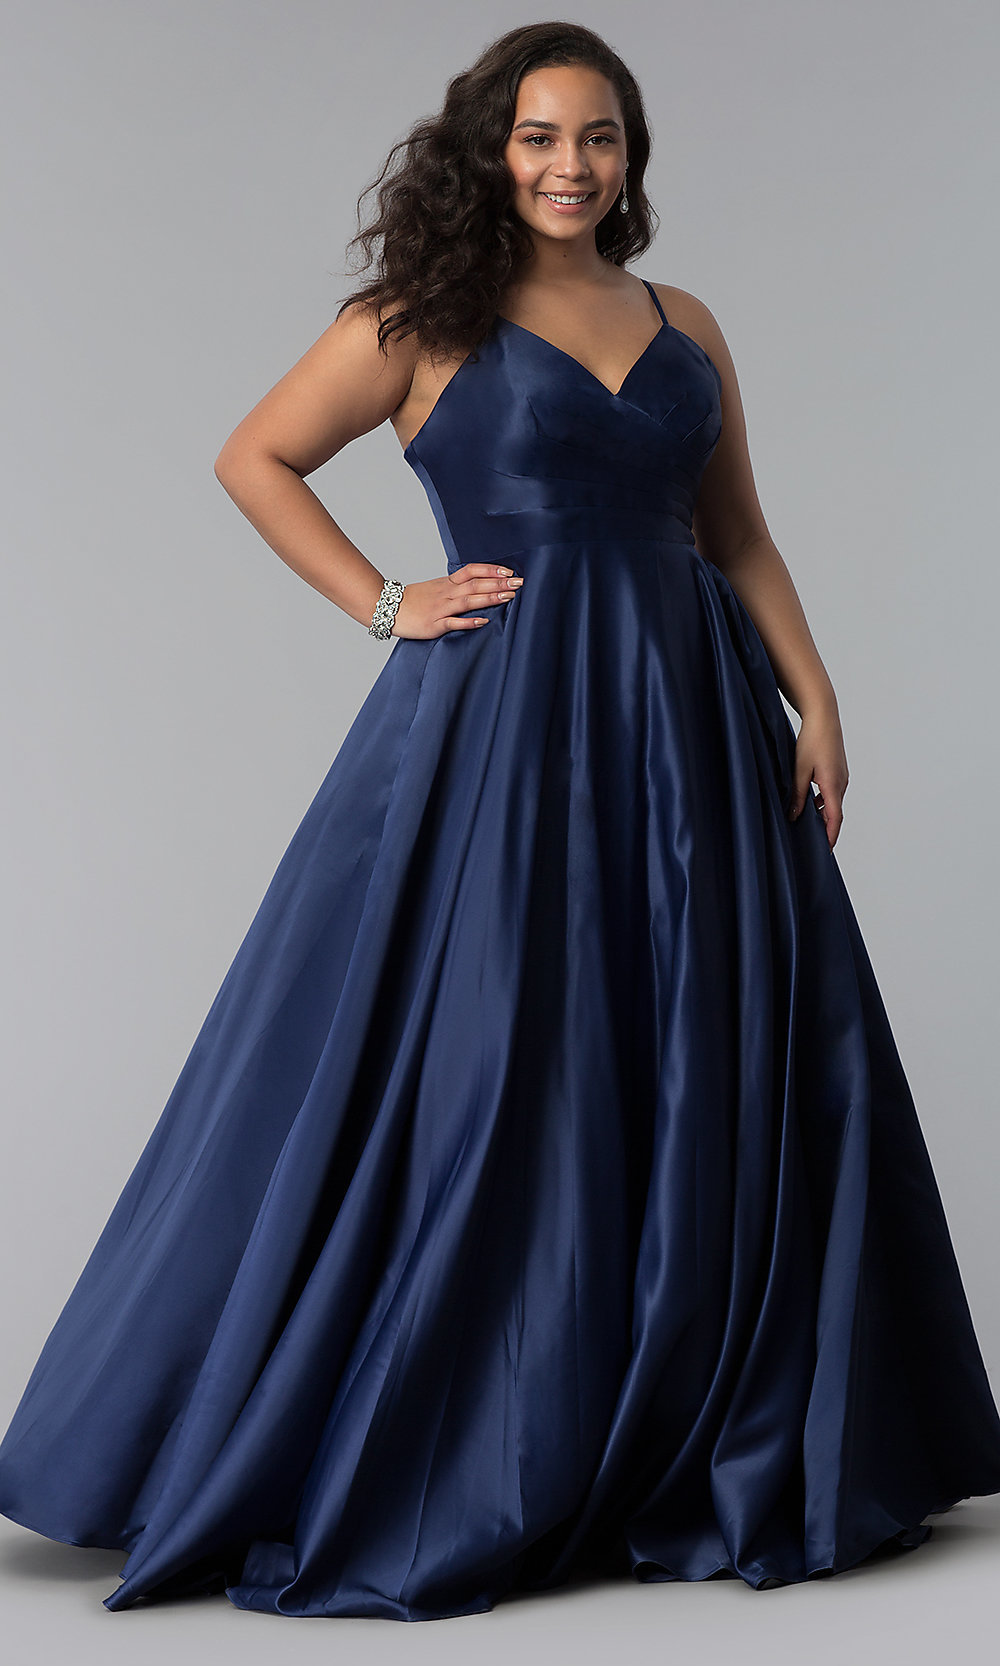 Plus Size Military Ball Dresses Under 100